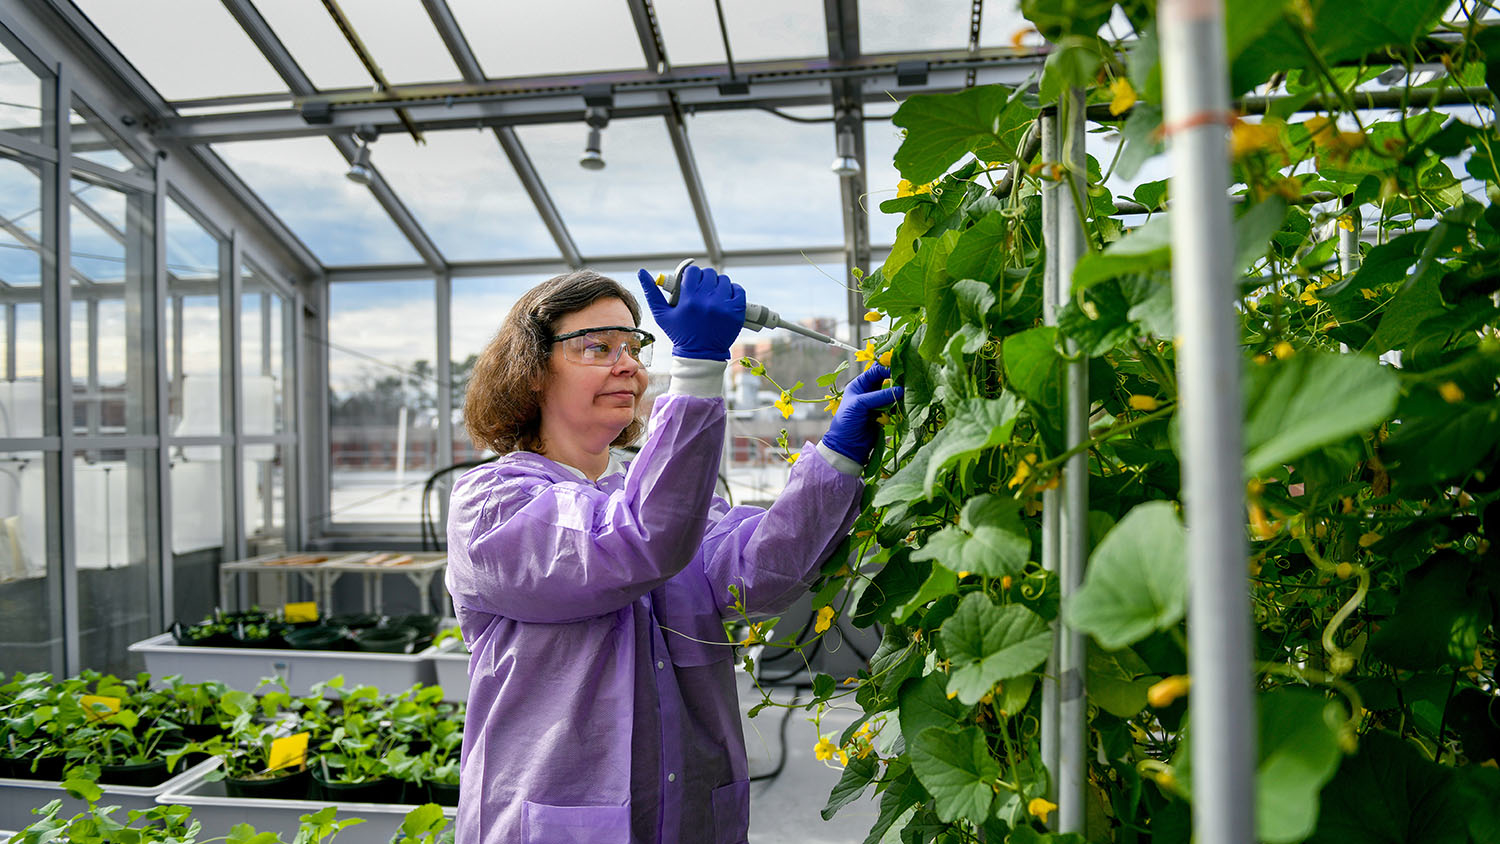 Kellie Burris in the Phytotron, inoculating a plant.